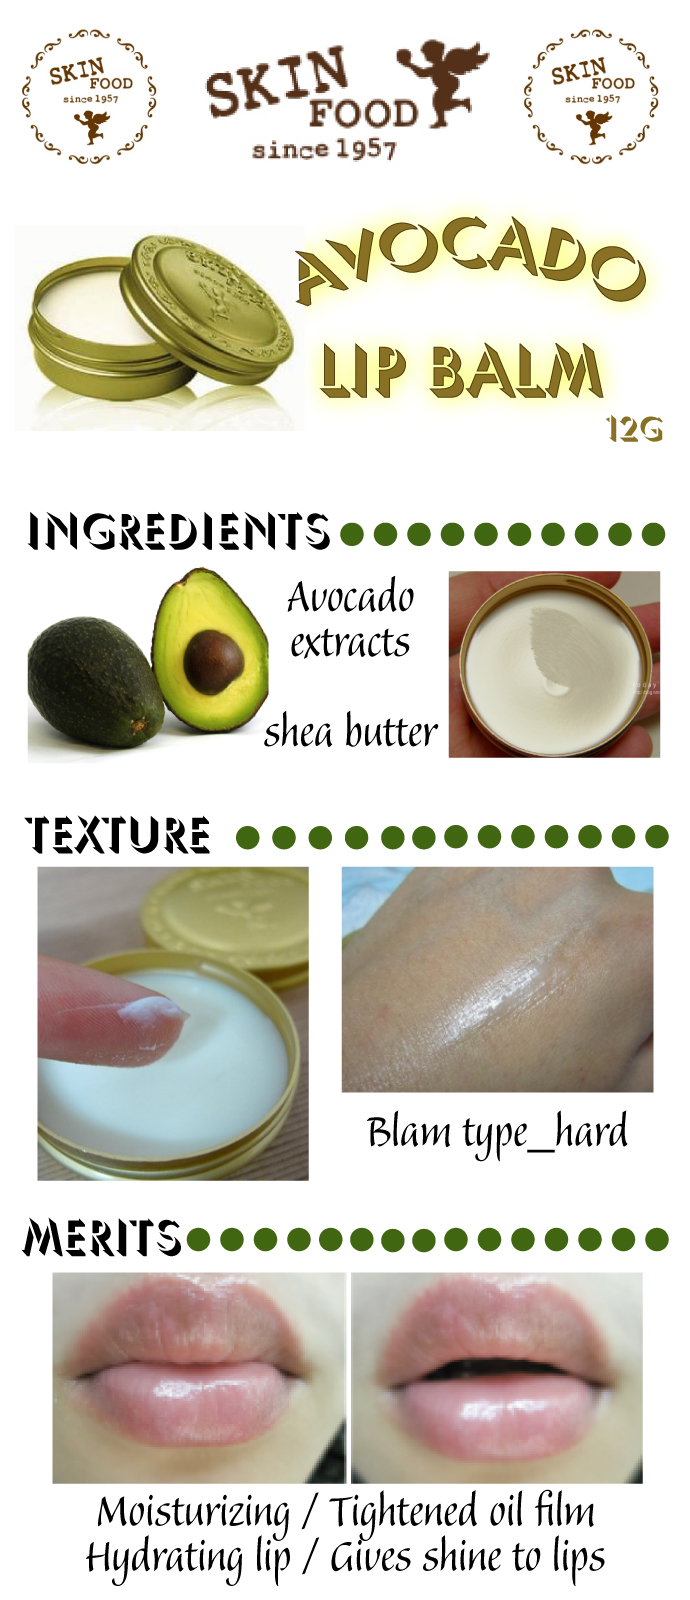 SKINFOOD_Avocado_Lip_Balm_12g